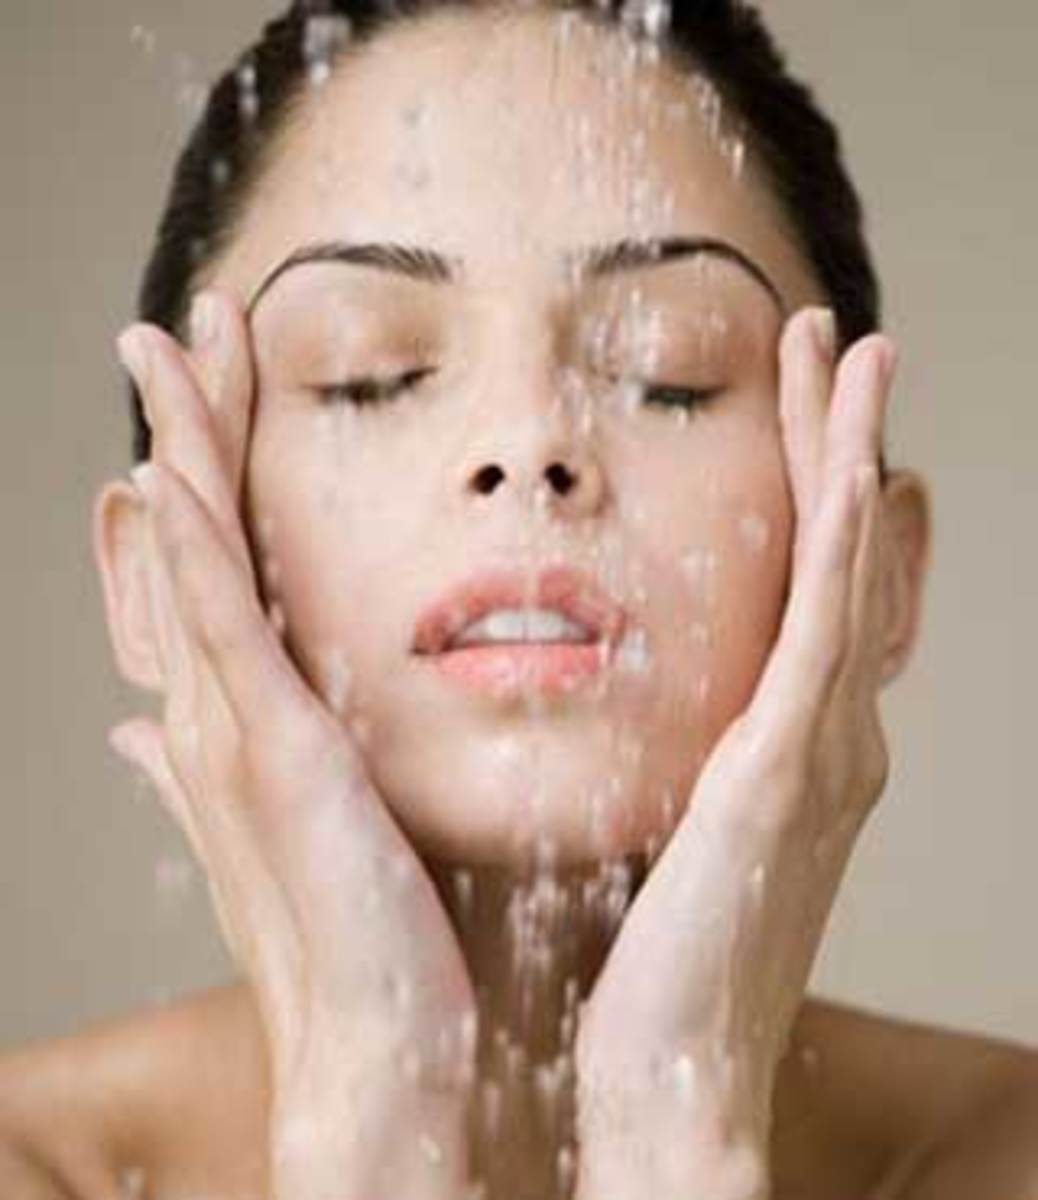 Spa-At-Home: Facial Cleanser and Face Scrub Recipes